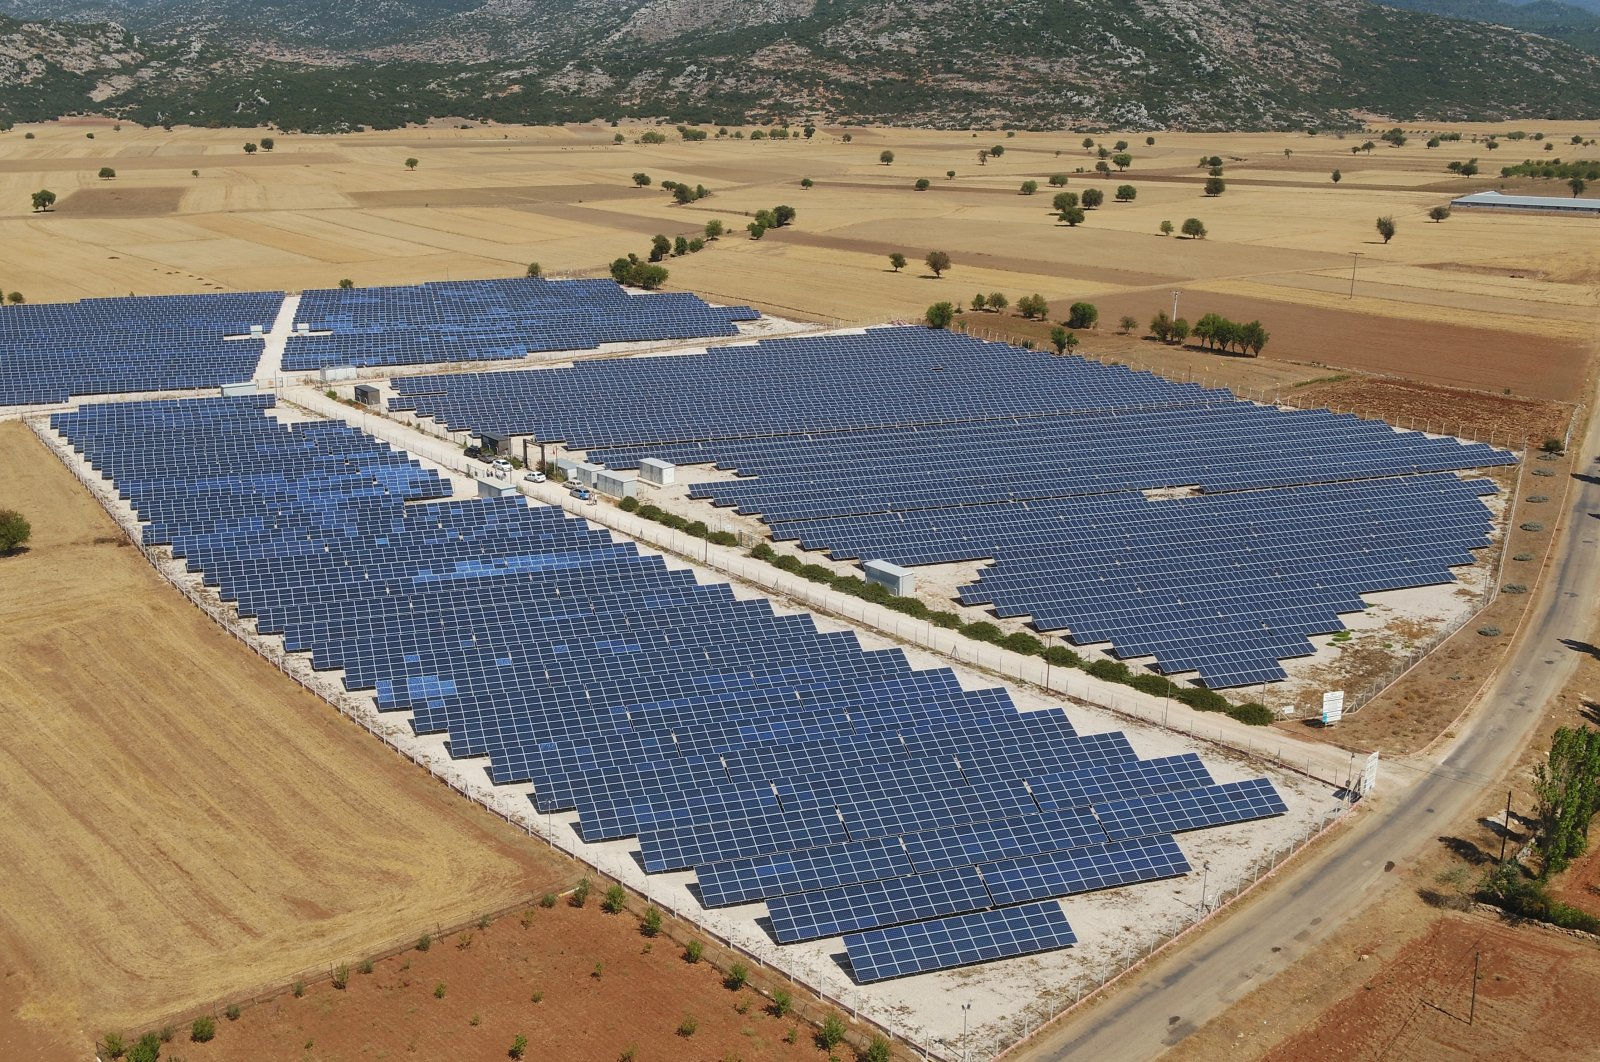 Solar panels are seen in the southern province of Antalya, Sept. 12, 2021. (IHA Photo)